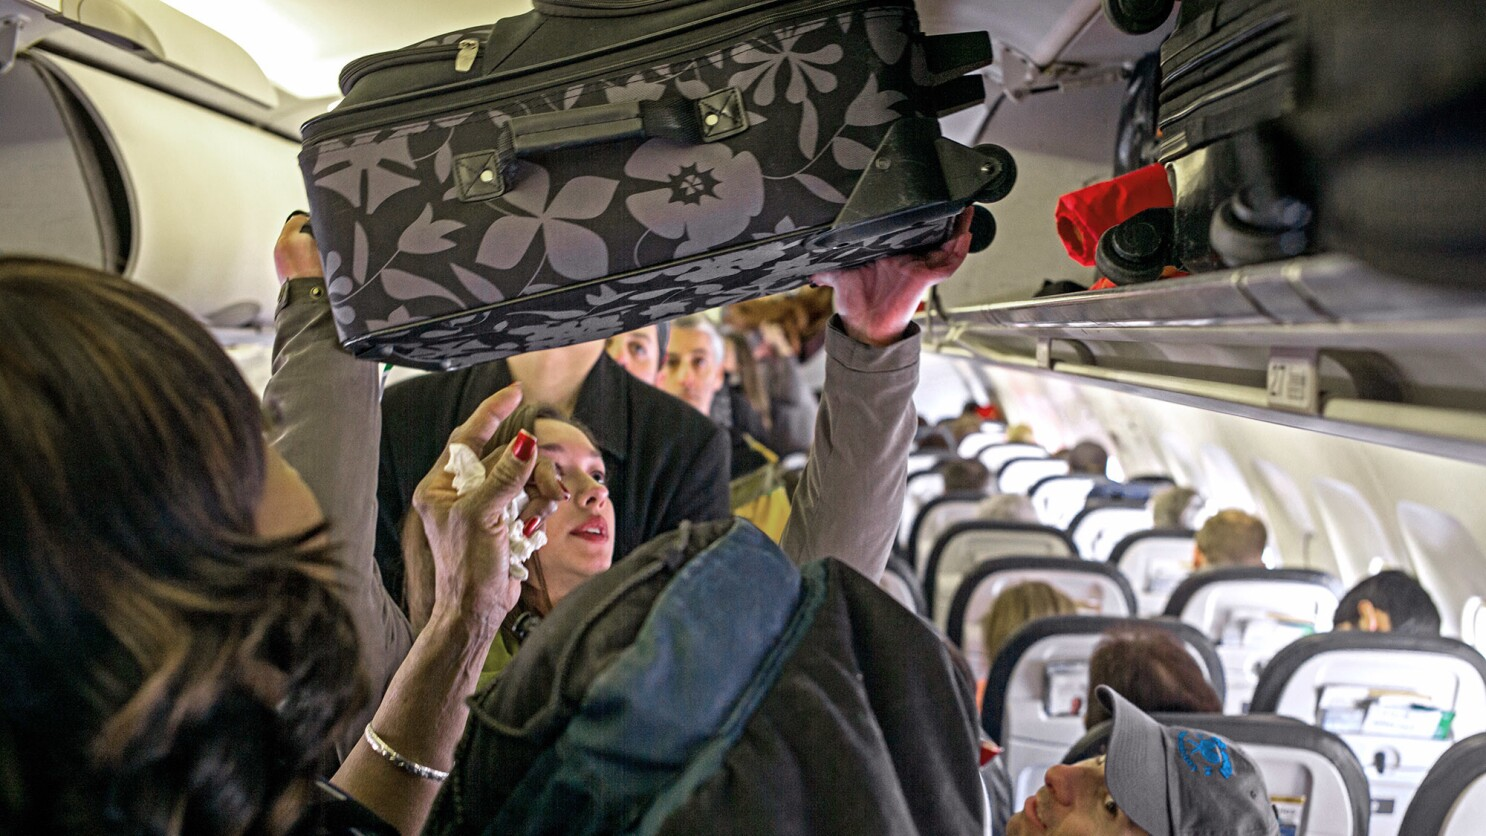 United Airlines Says It Won T Change Its Policy About Carry On Bags For Basic Economy Fliers Los Angeles Times,Questions To Ask When Buying A House Checklist Pdf